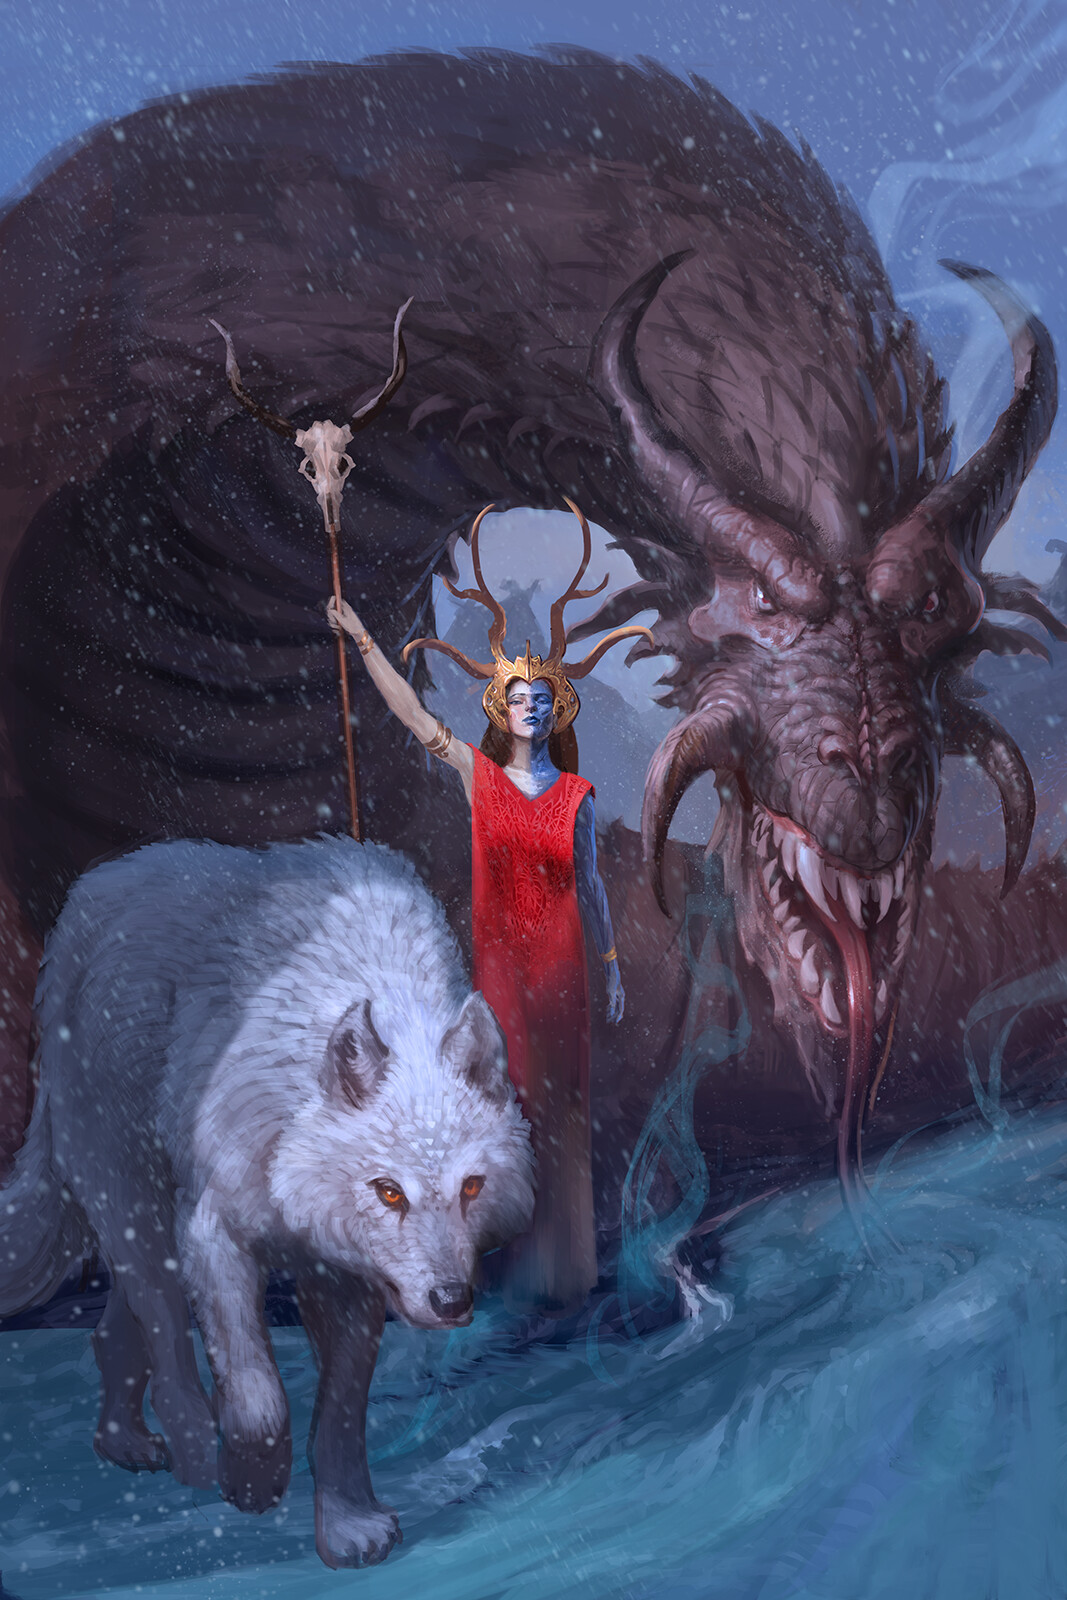 Hel, with her pets Nithog and Garm.